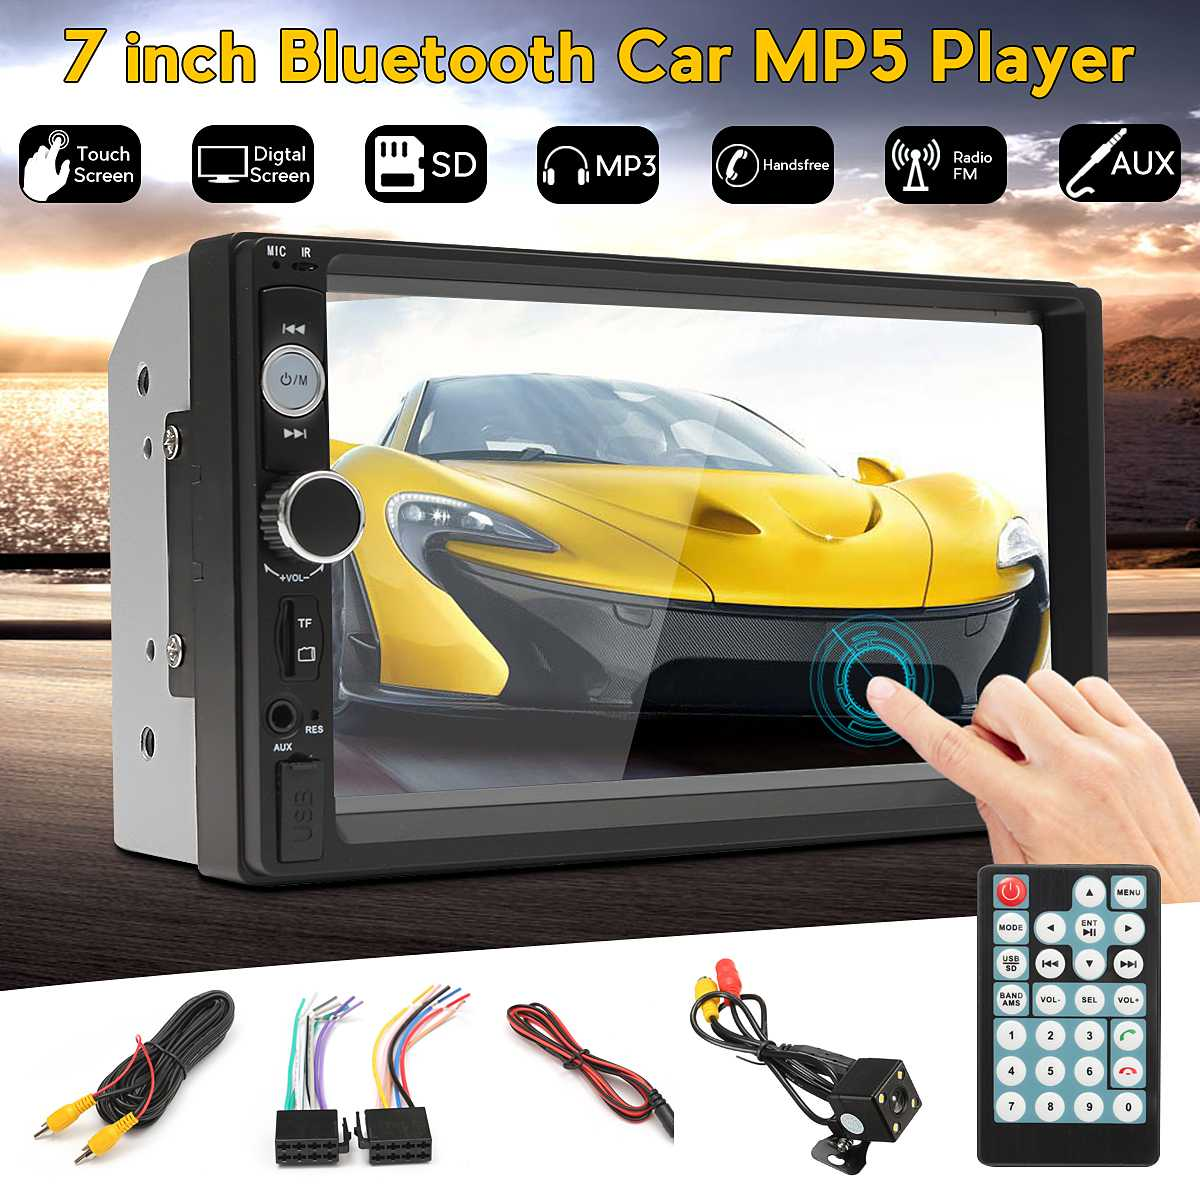 7 inch 2 Din bluetooth Touchscreen Car MP5 Player AUX/USB/FM Radio Multimedia Video Audio Stereo Autoradio + Rear View Camera7 inch 2 Din bluetooth Touchscreen Car MP5 Player AUX/USB/FM Radio Multimedia Video Audio Stereo Autoradio + Rear View Camera